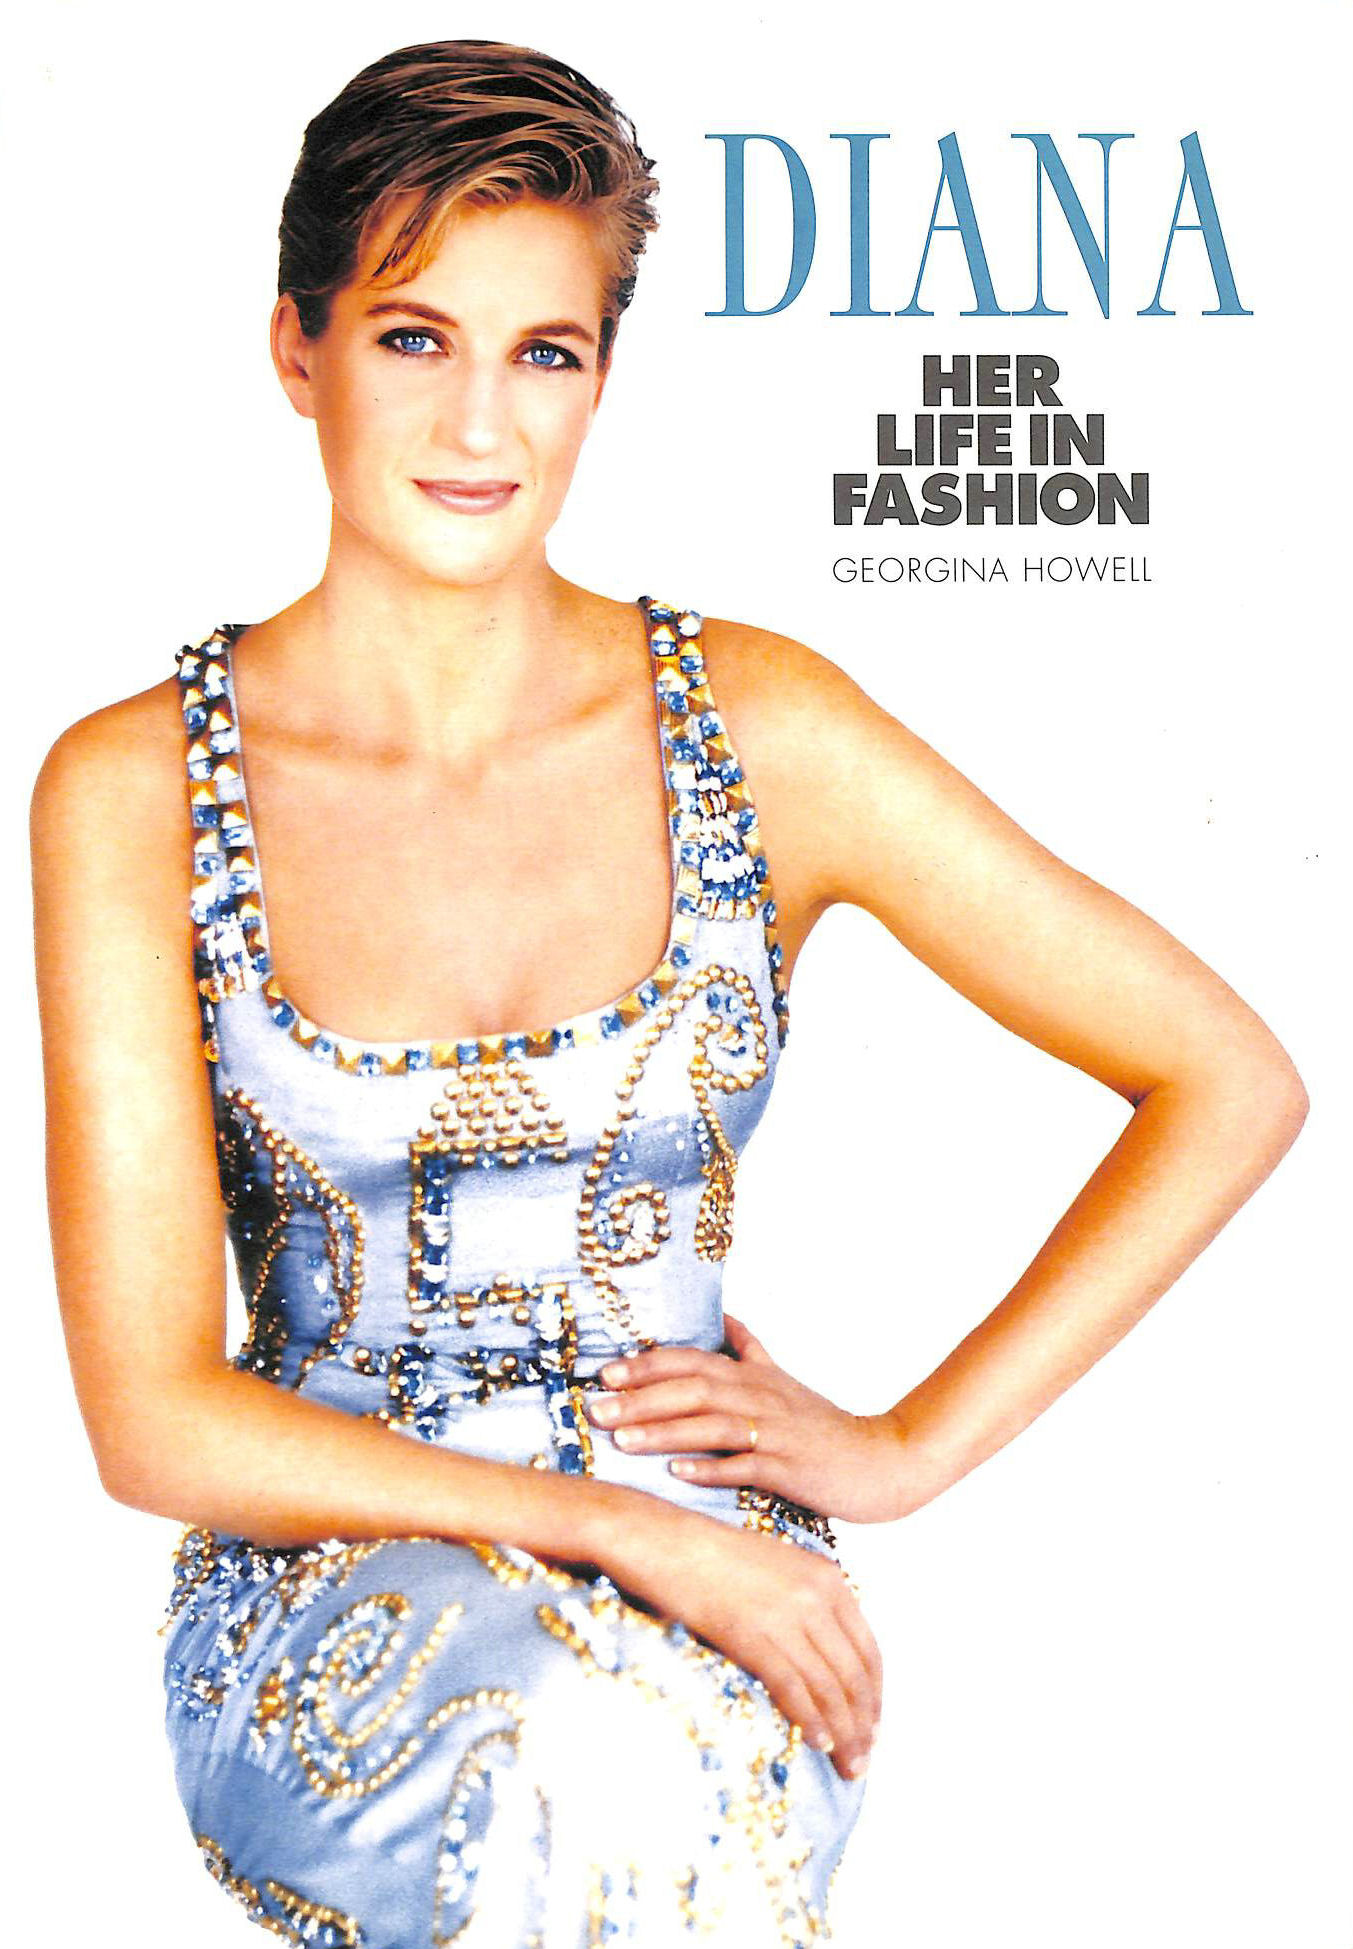 Image for DIANA HER LIFE IN FASHION (Diana Princess of Wales)